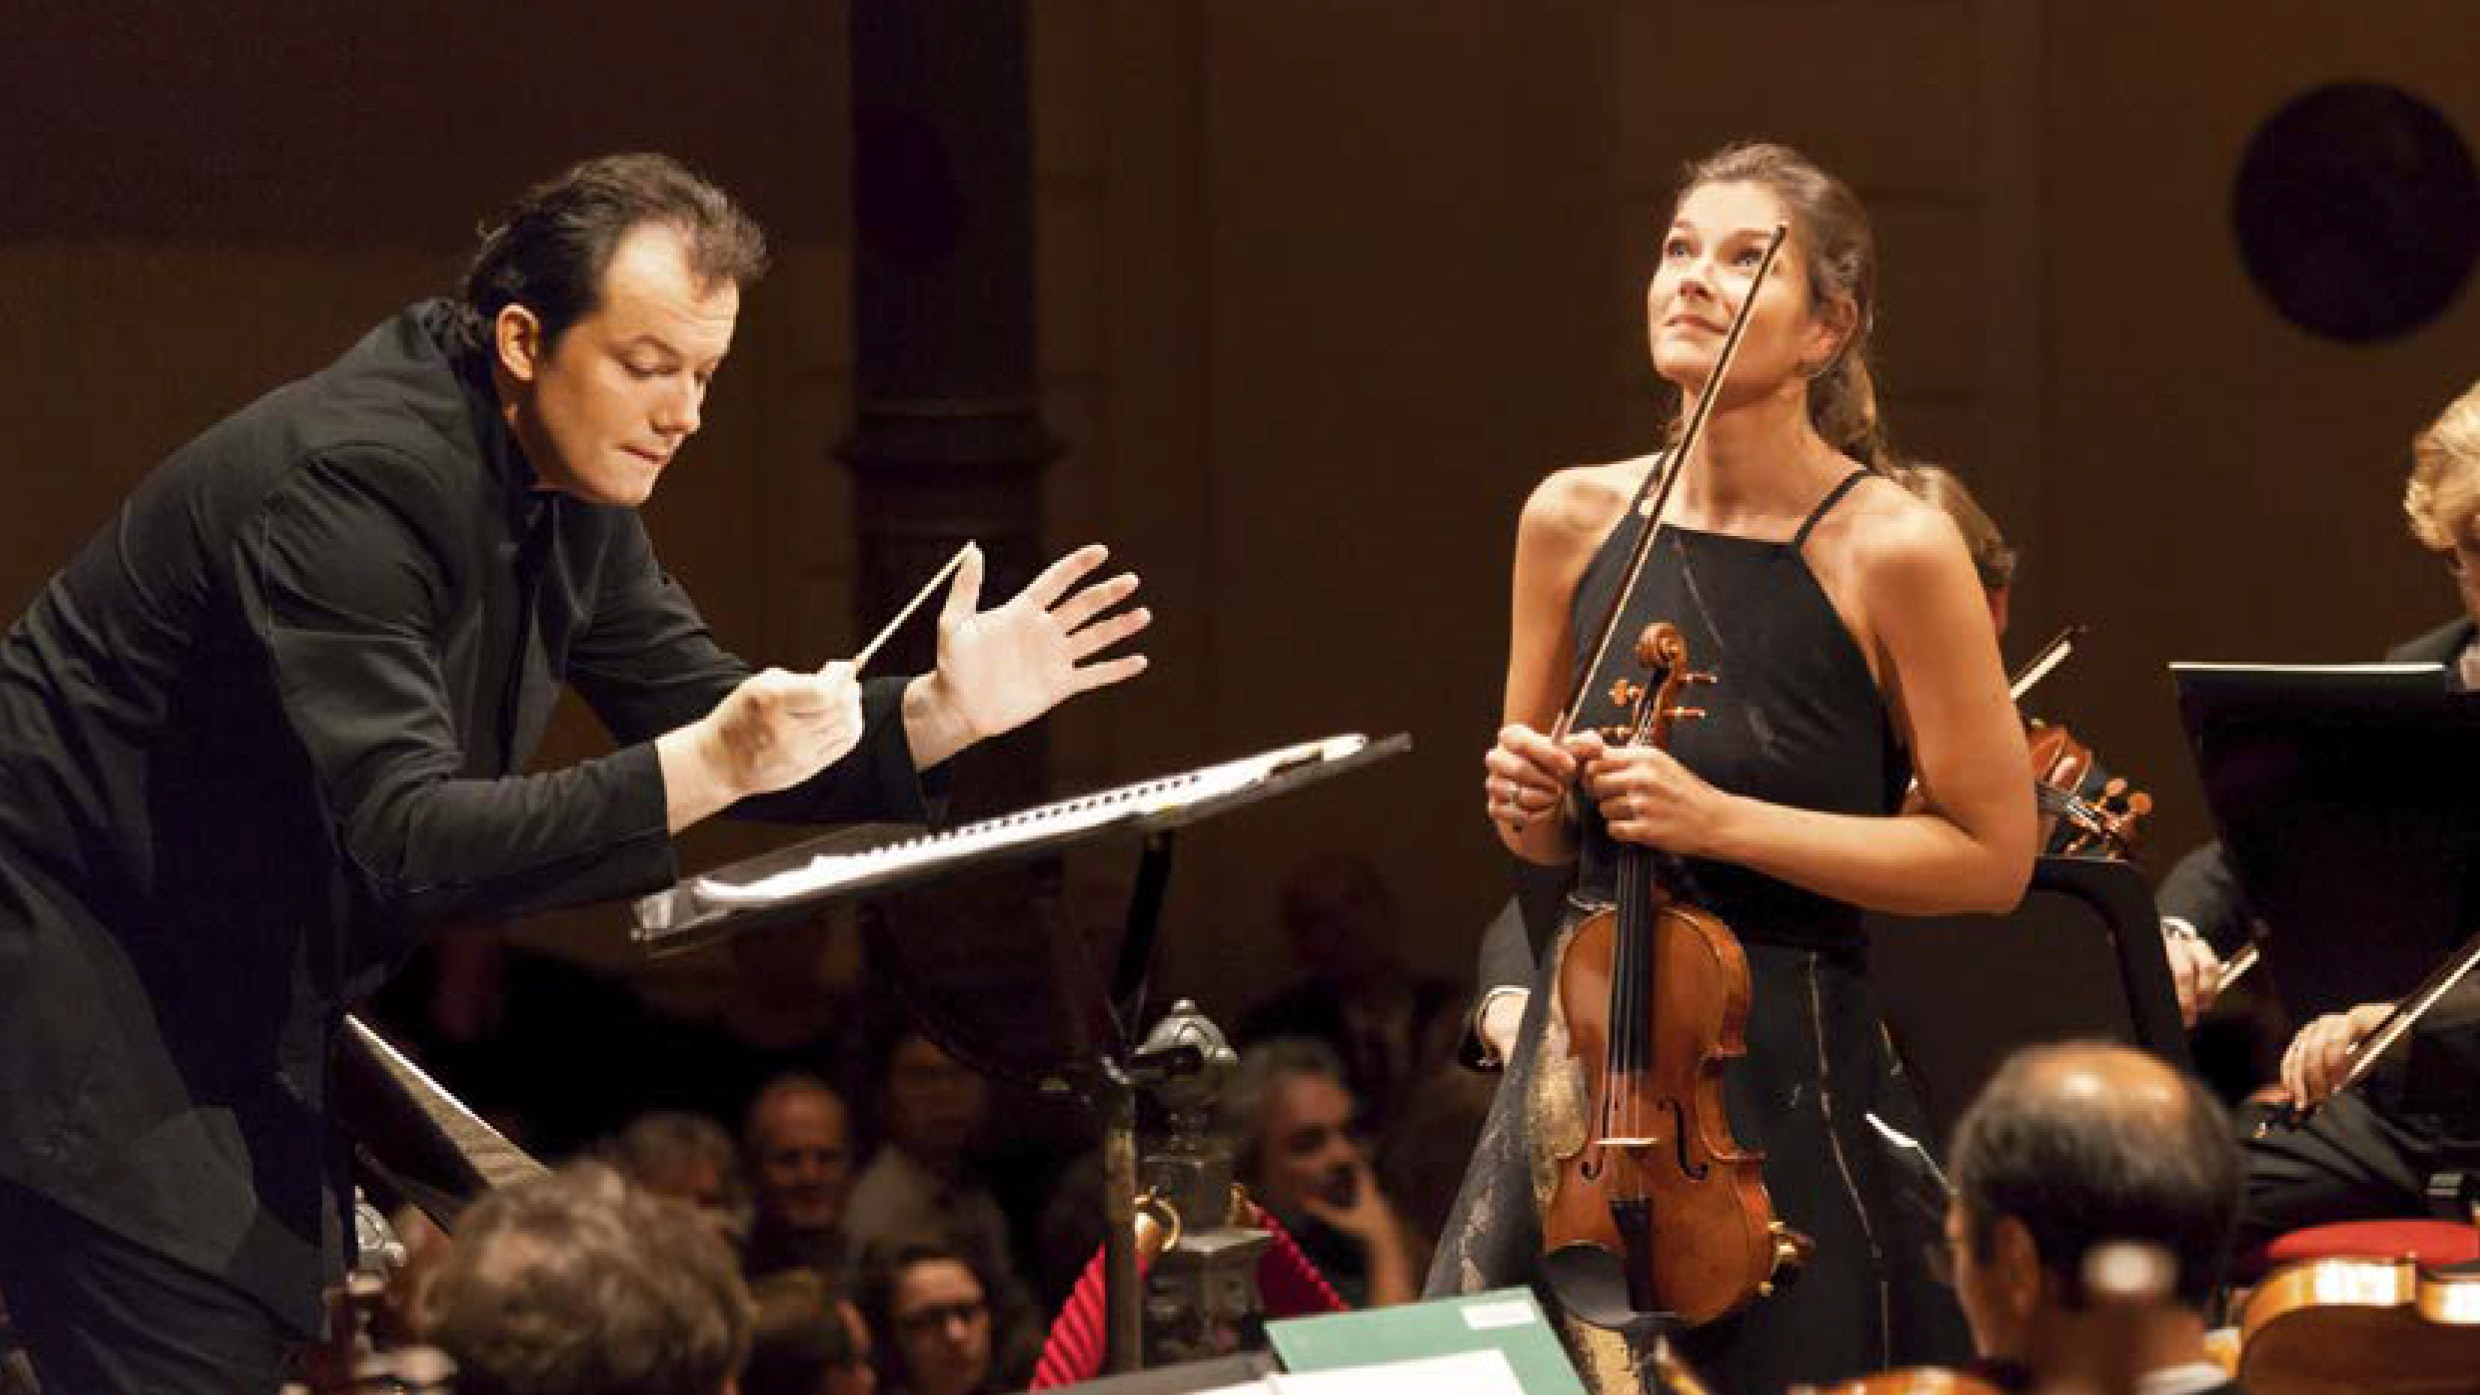 Andris Nelsons conducts Shostakovich and Bartók – With Janine Jansen